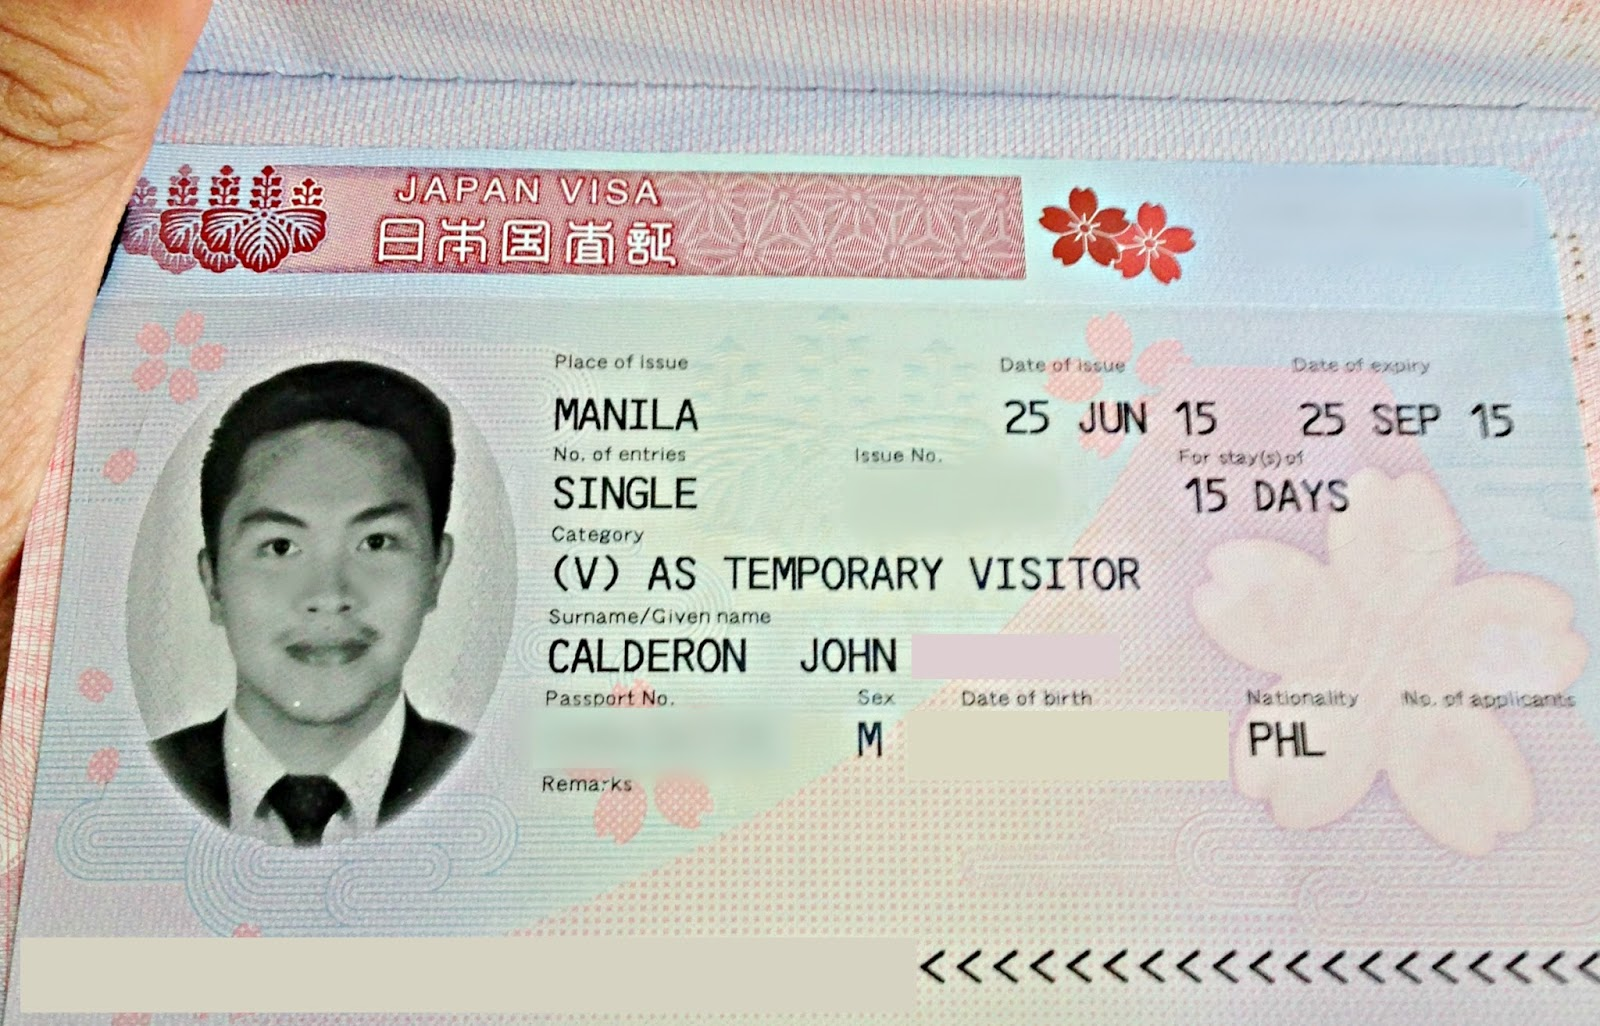 Reli Tours Japan Visa Denied